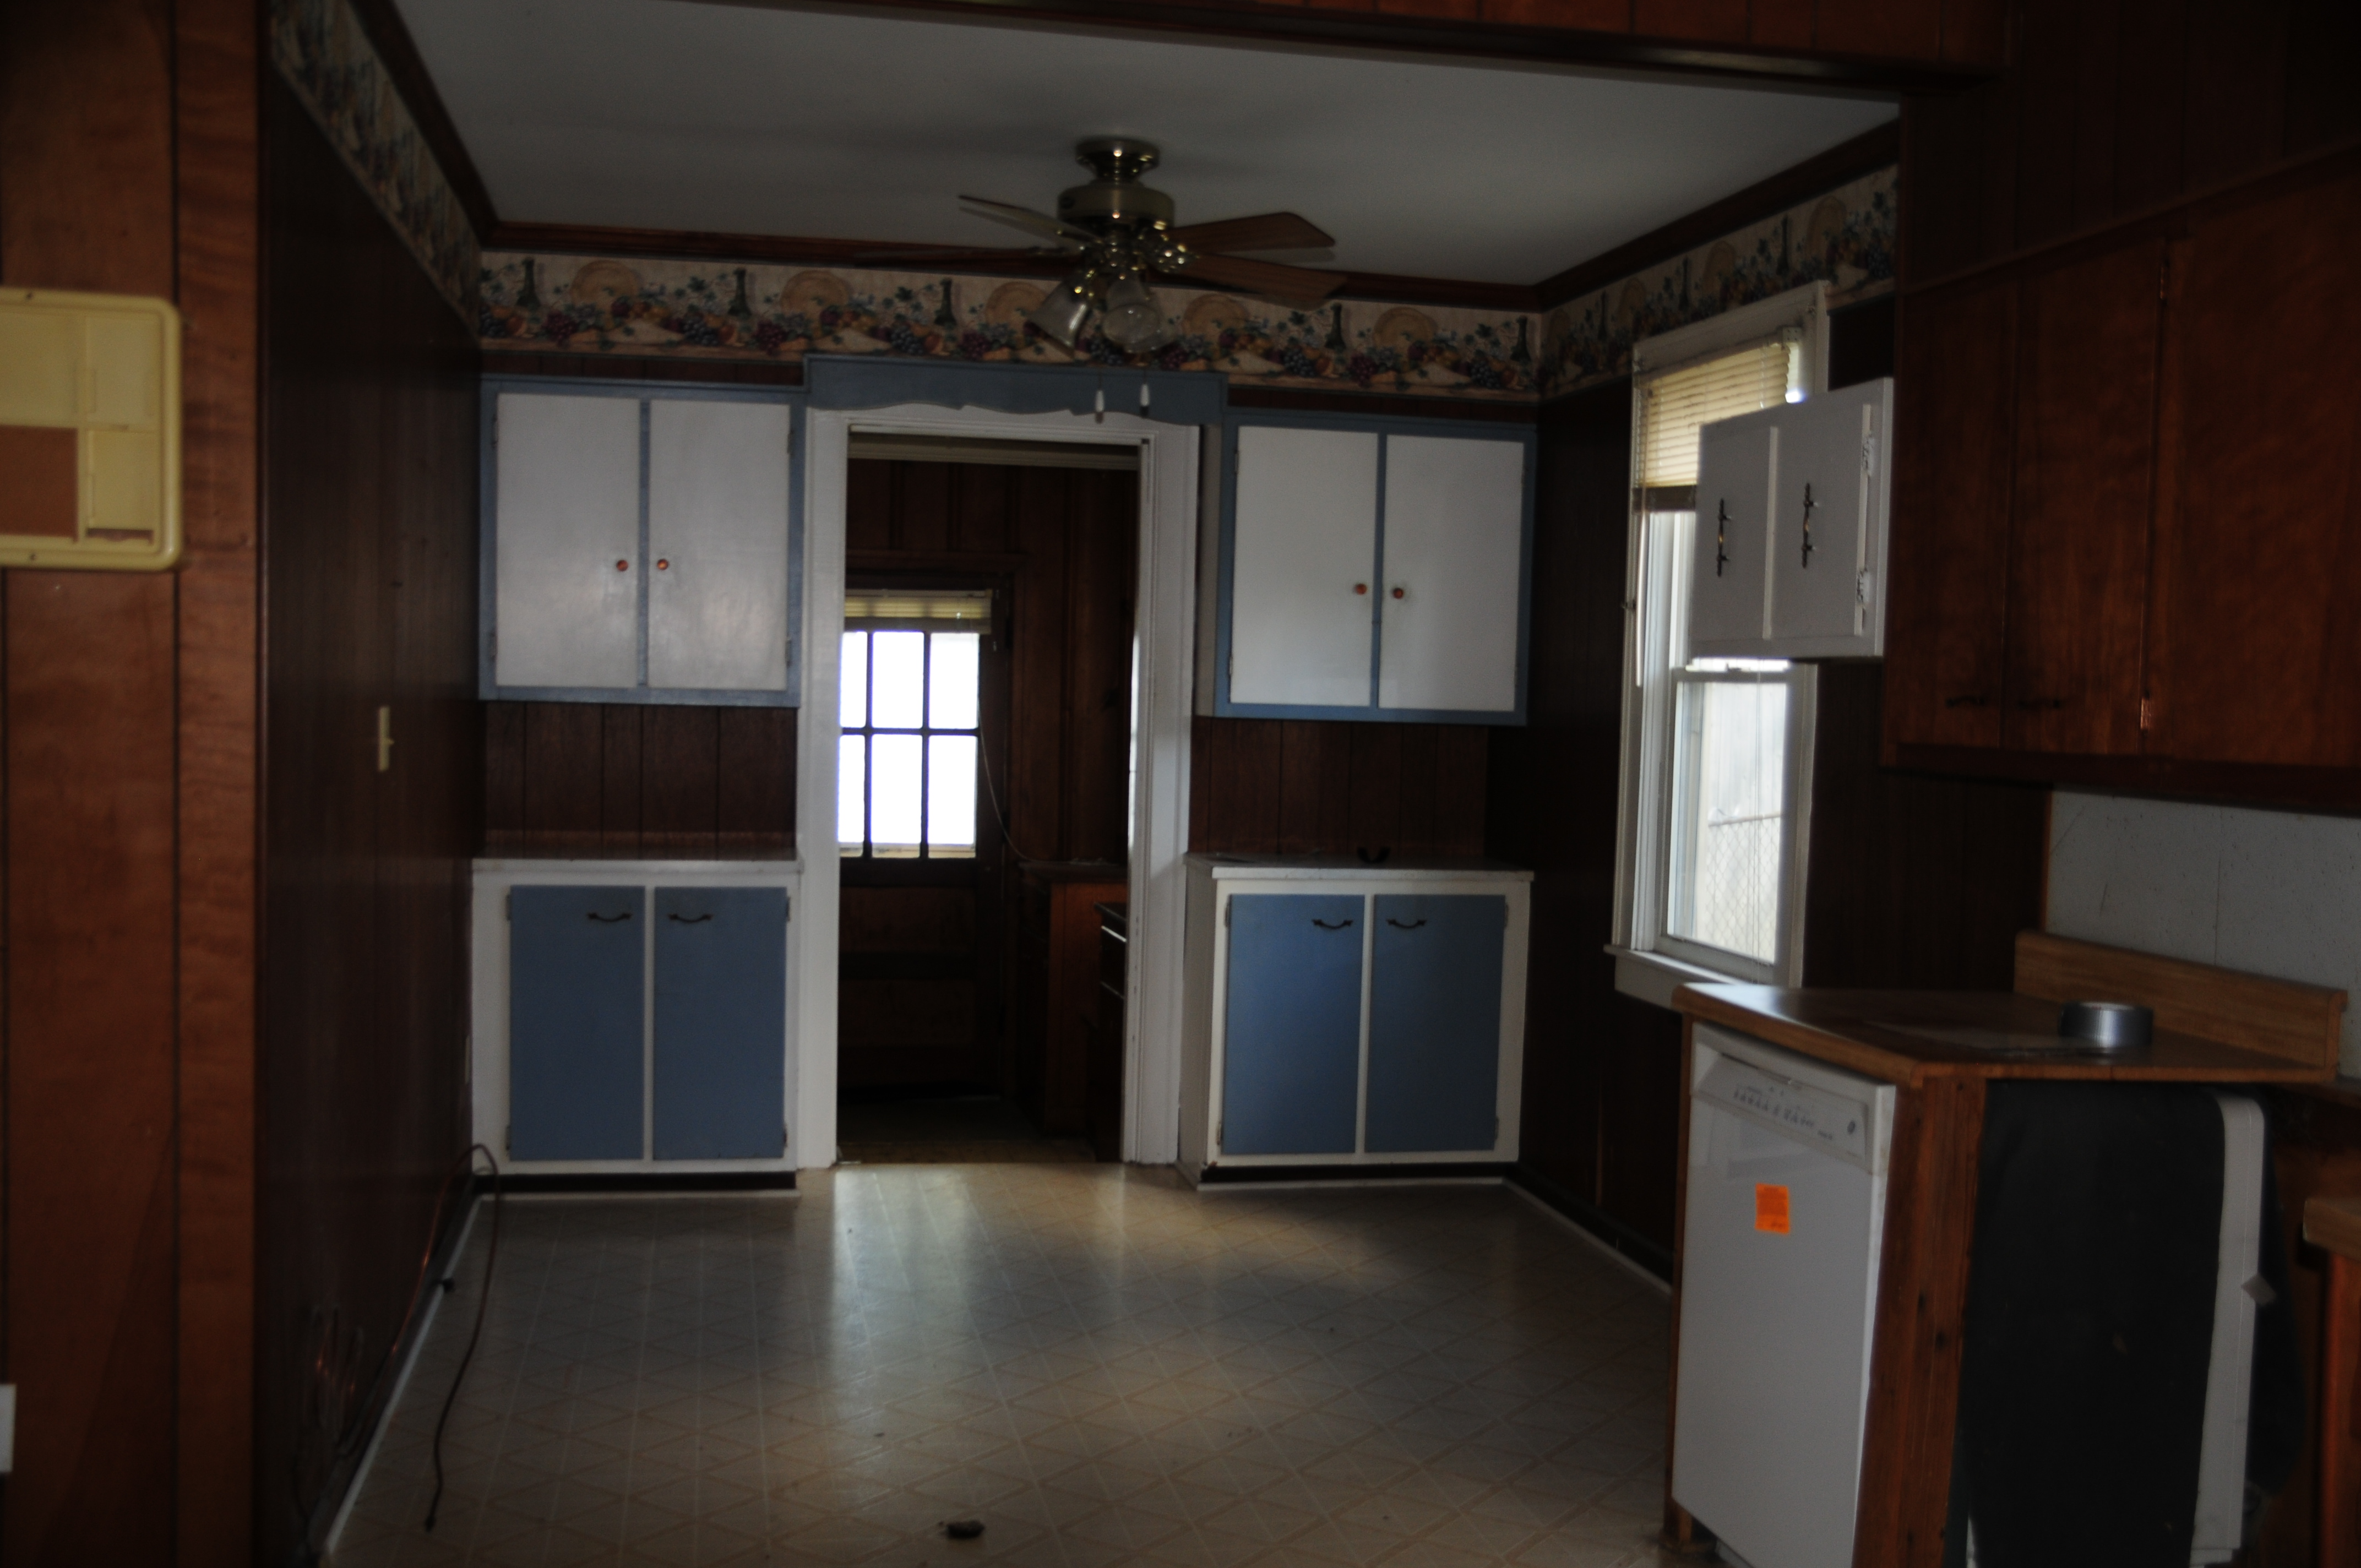 Two Tone Wall Paint Jobs - The kitchen was nice sized large enough for an eat in dining area but the two tone paint job on the extra cabinets dated wallpaper border